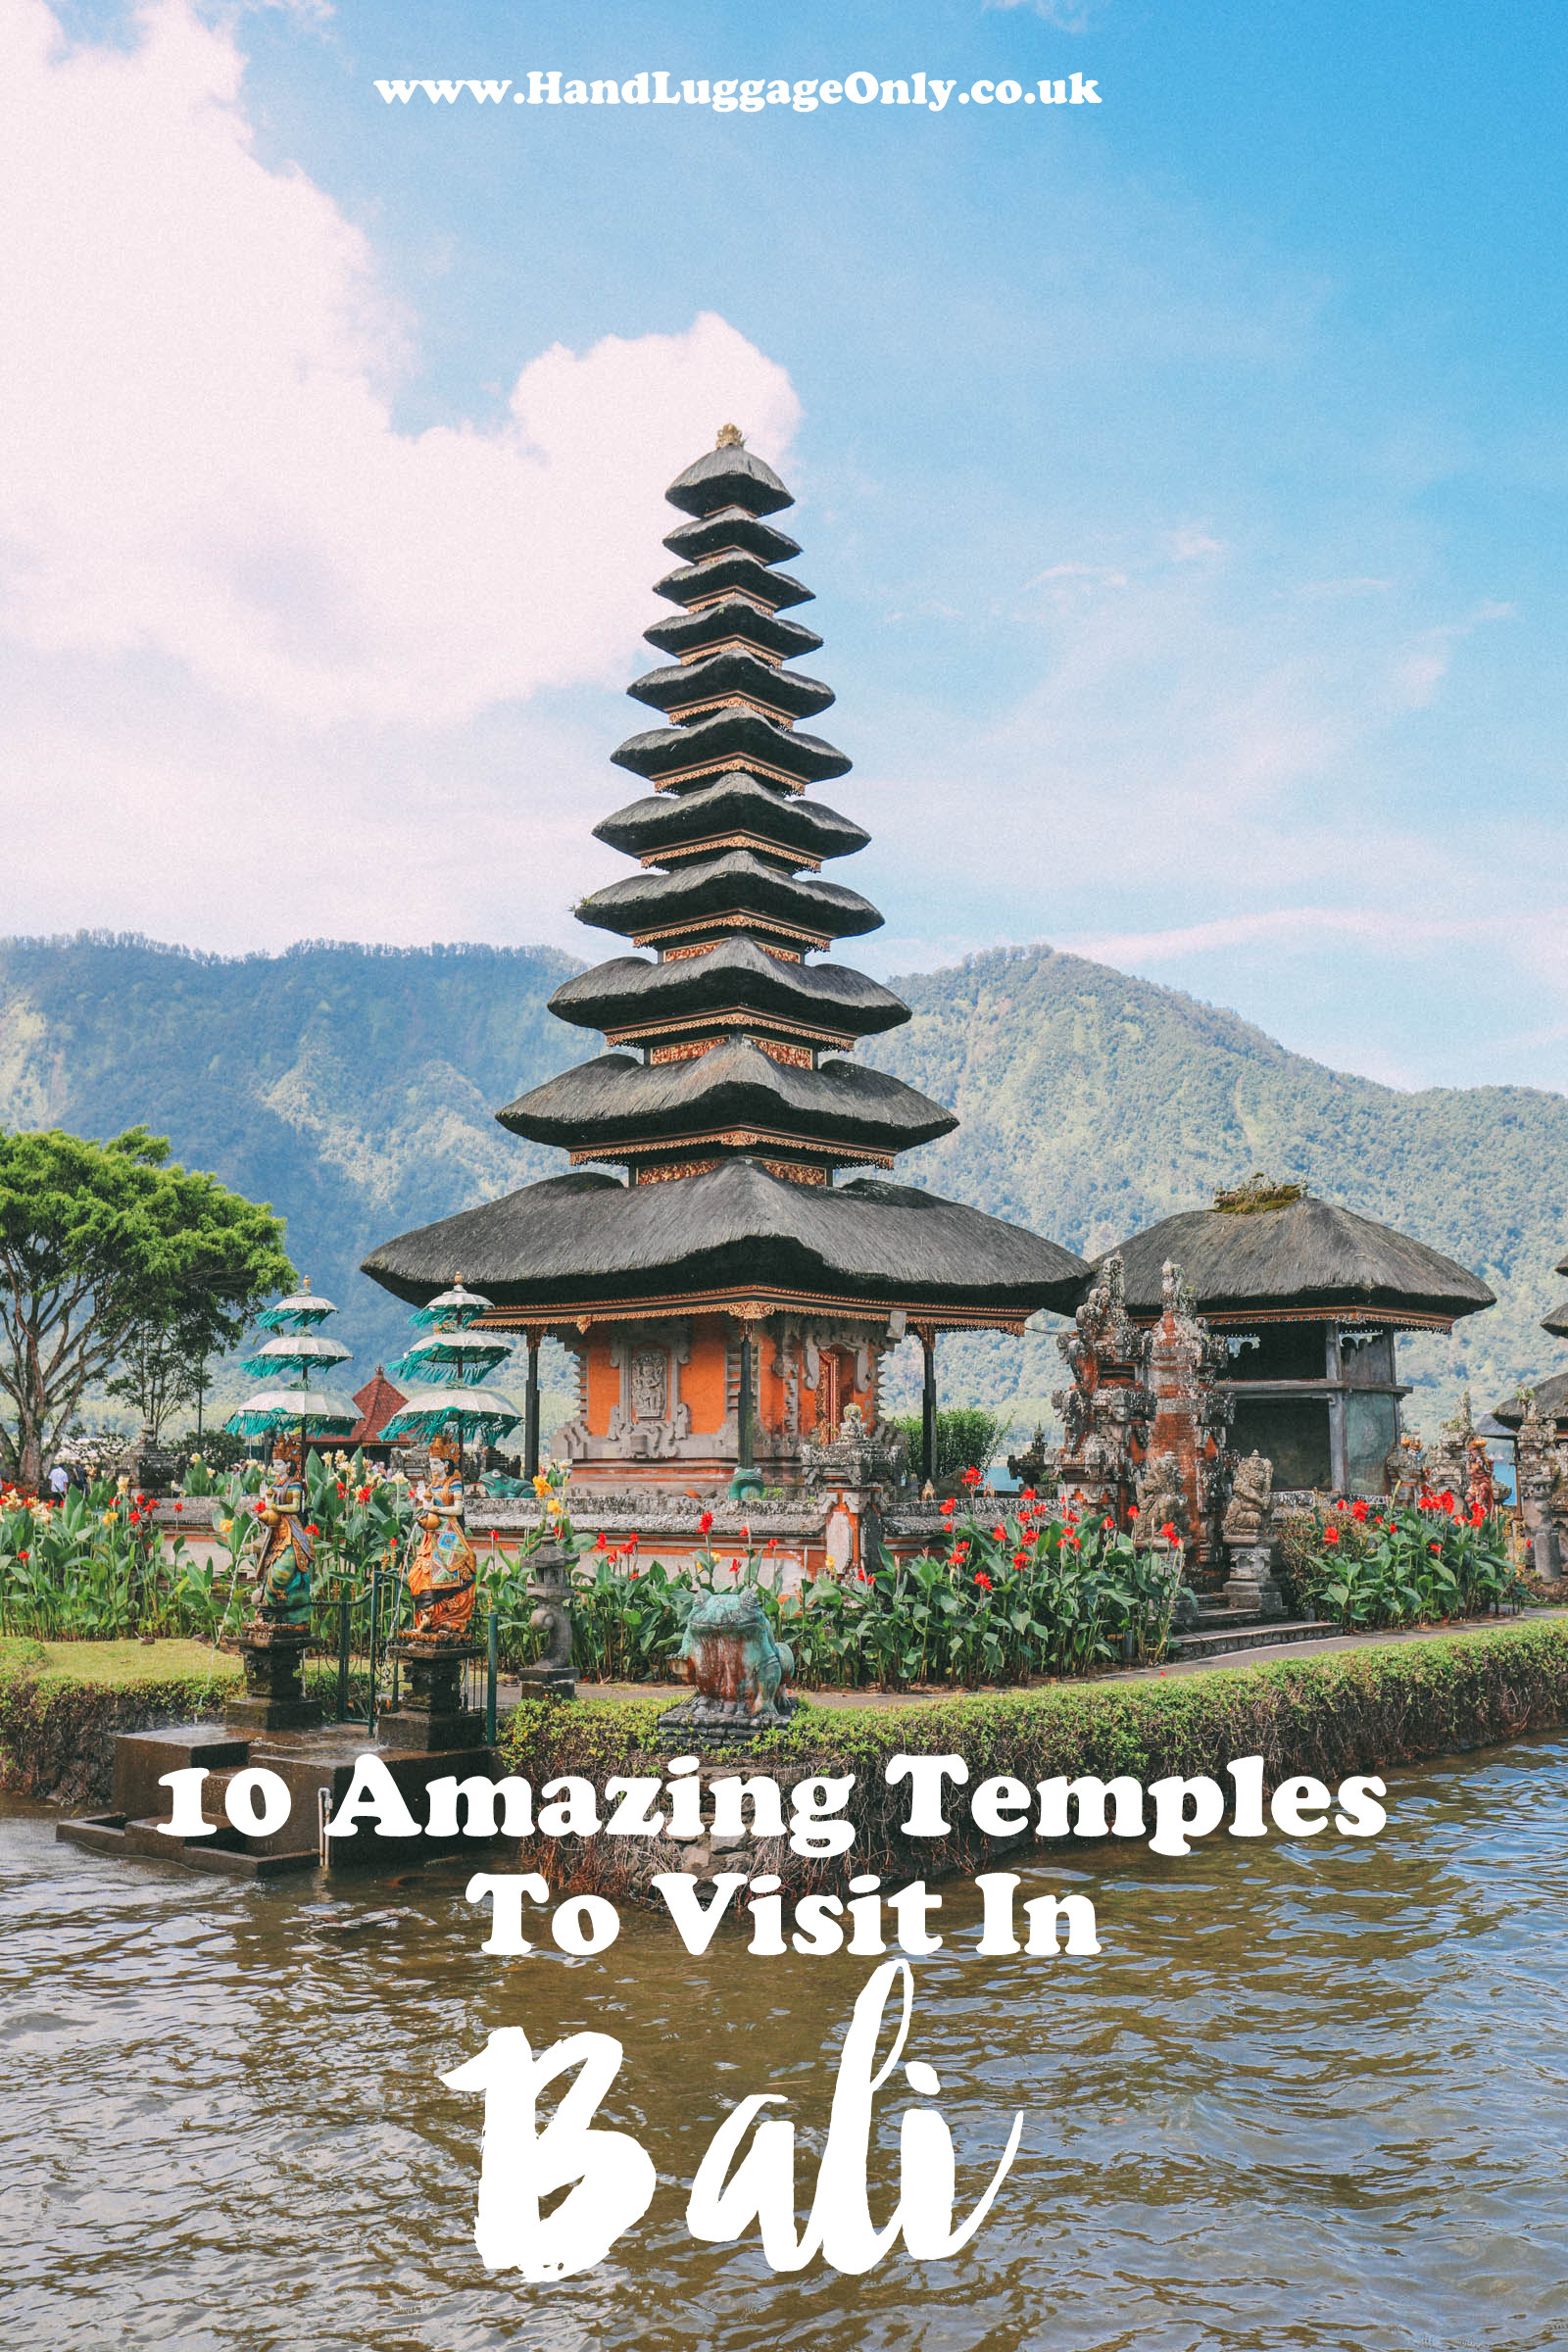 11 Amazing Temples You Have To Visit In Bali And Why! (1)